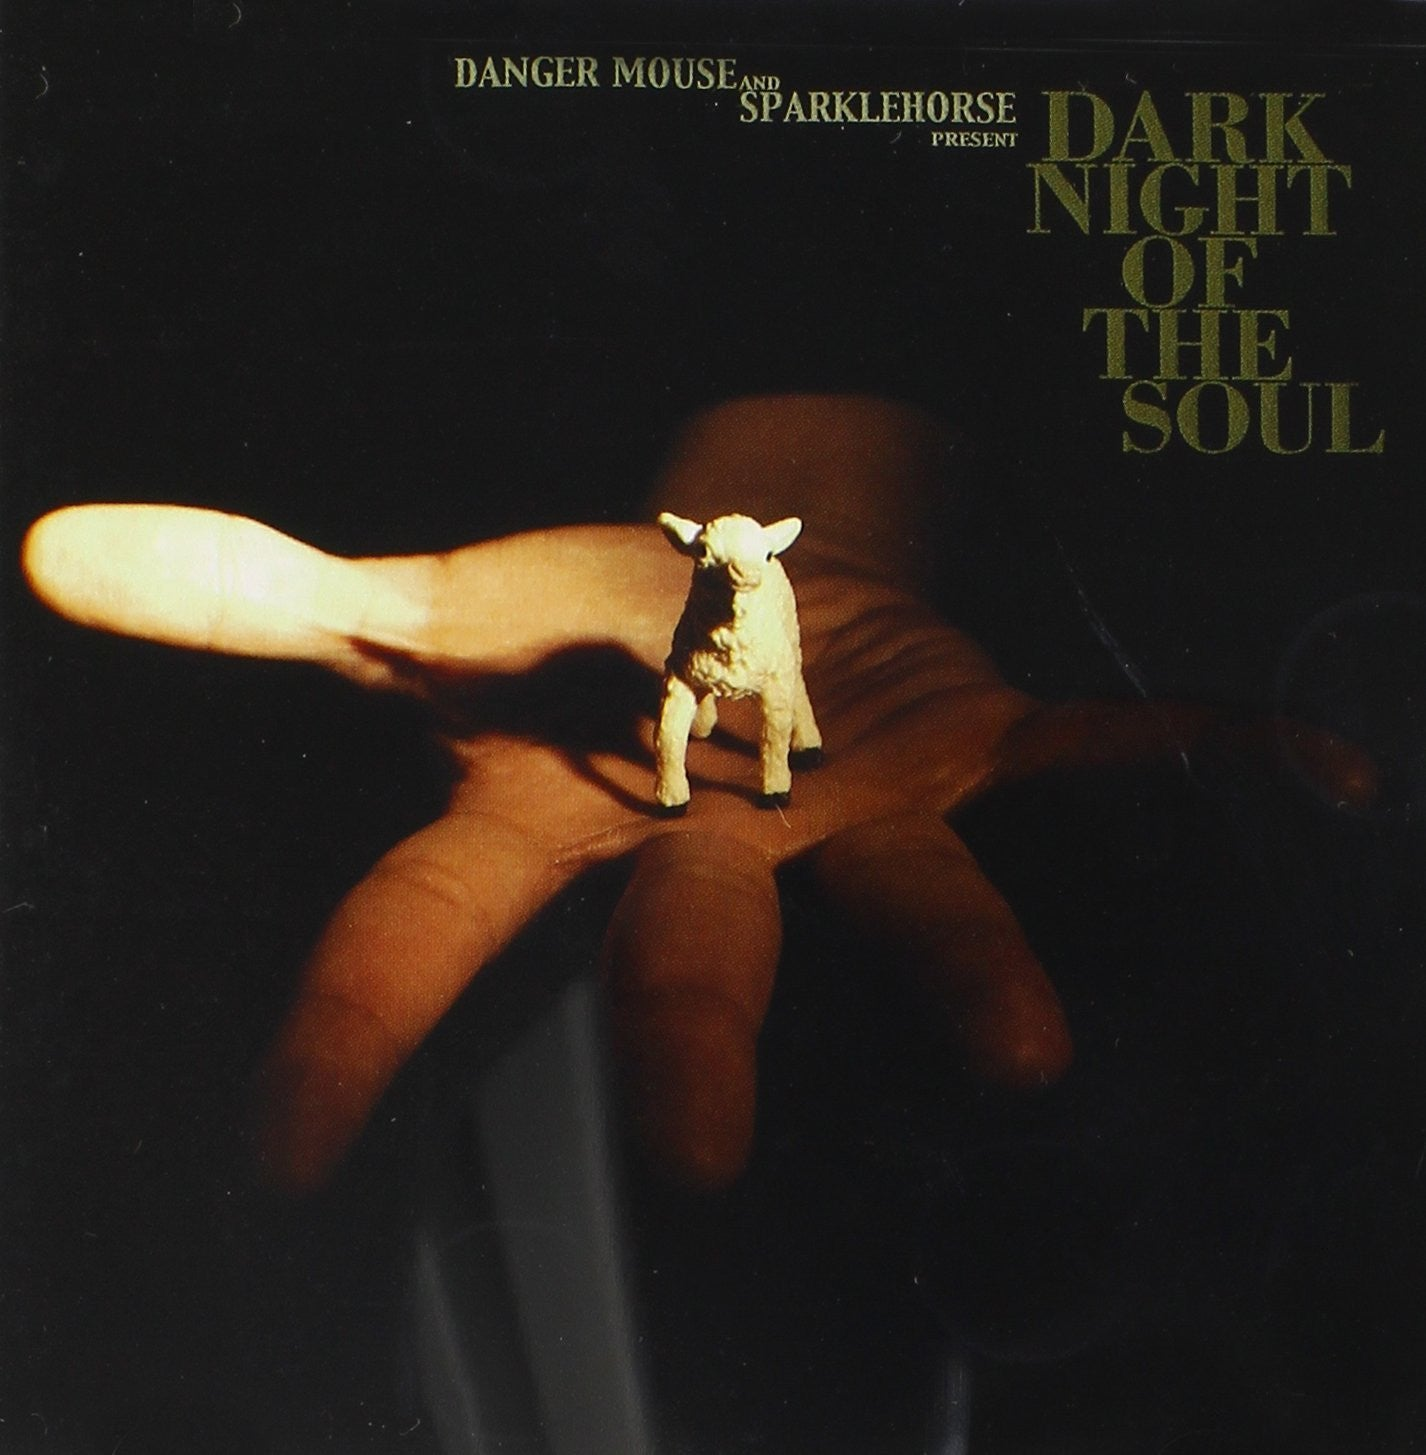 Dangermouse & Sparklehorse - Dark Night Of The Soul LP